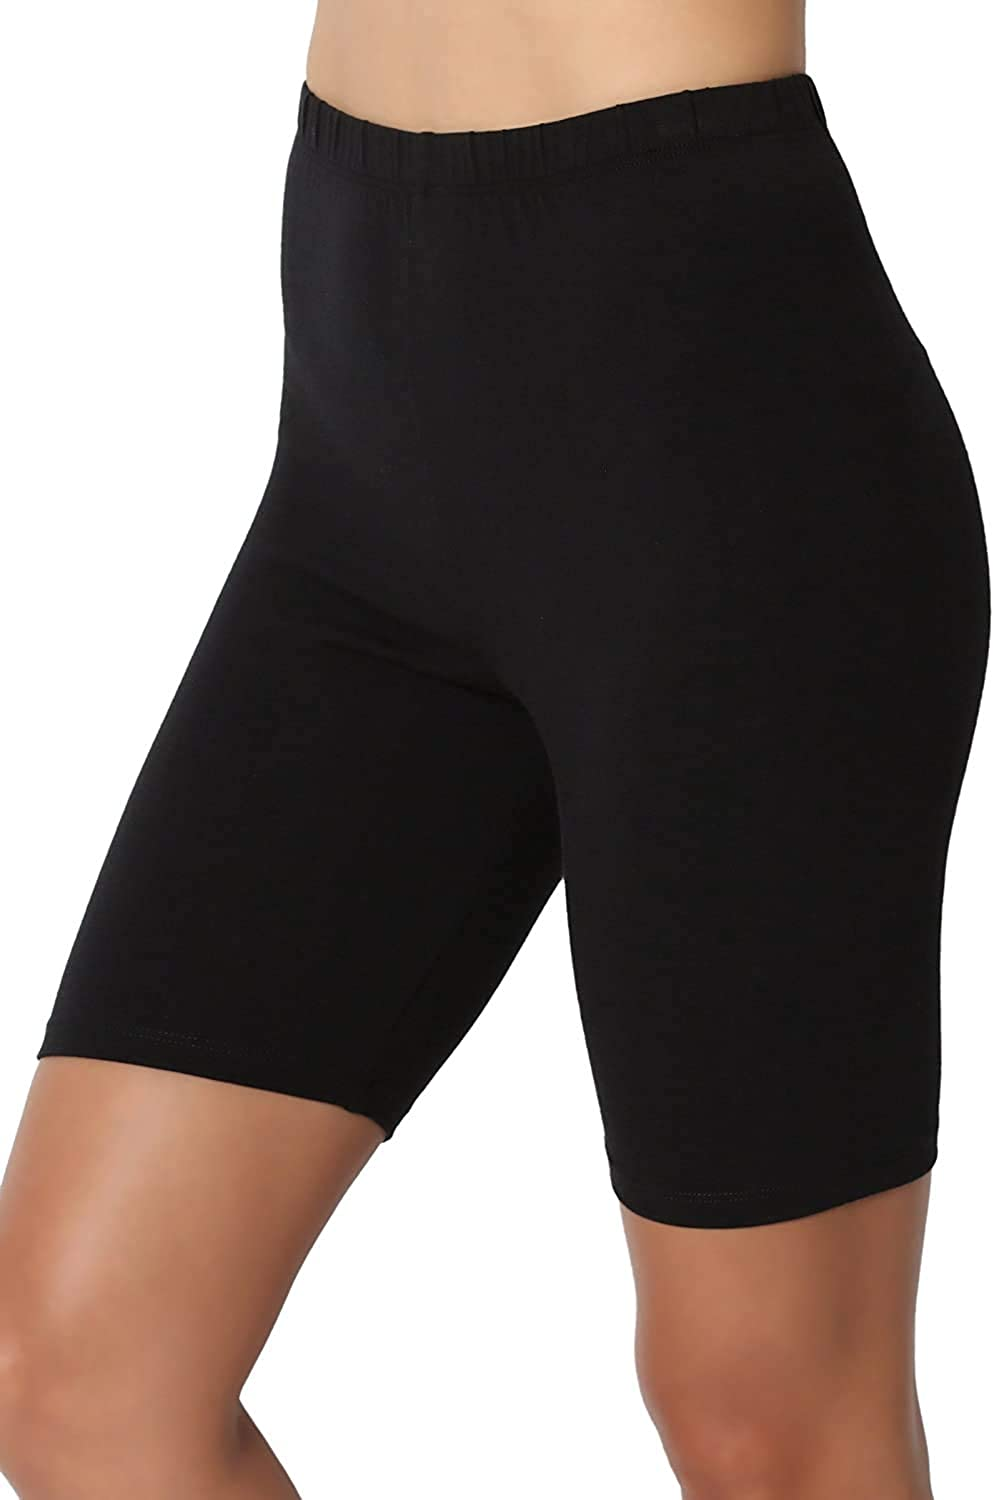 UEJUNBO Mid Thigh Stretch Cotton Span High Waist Active Five Points Short Leggings